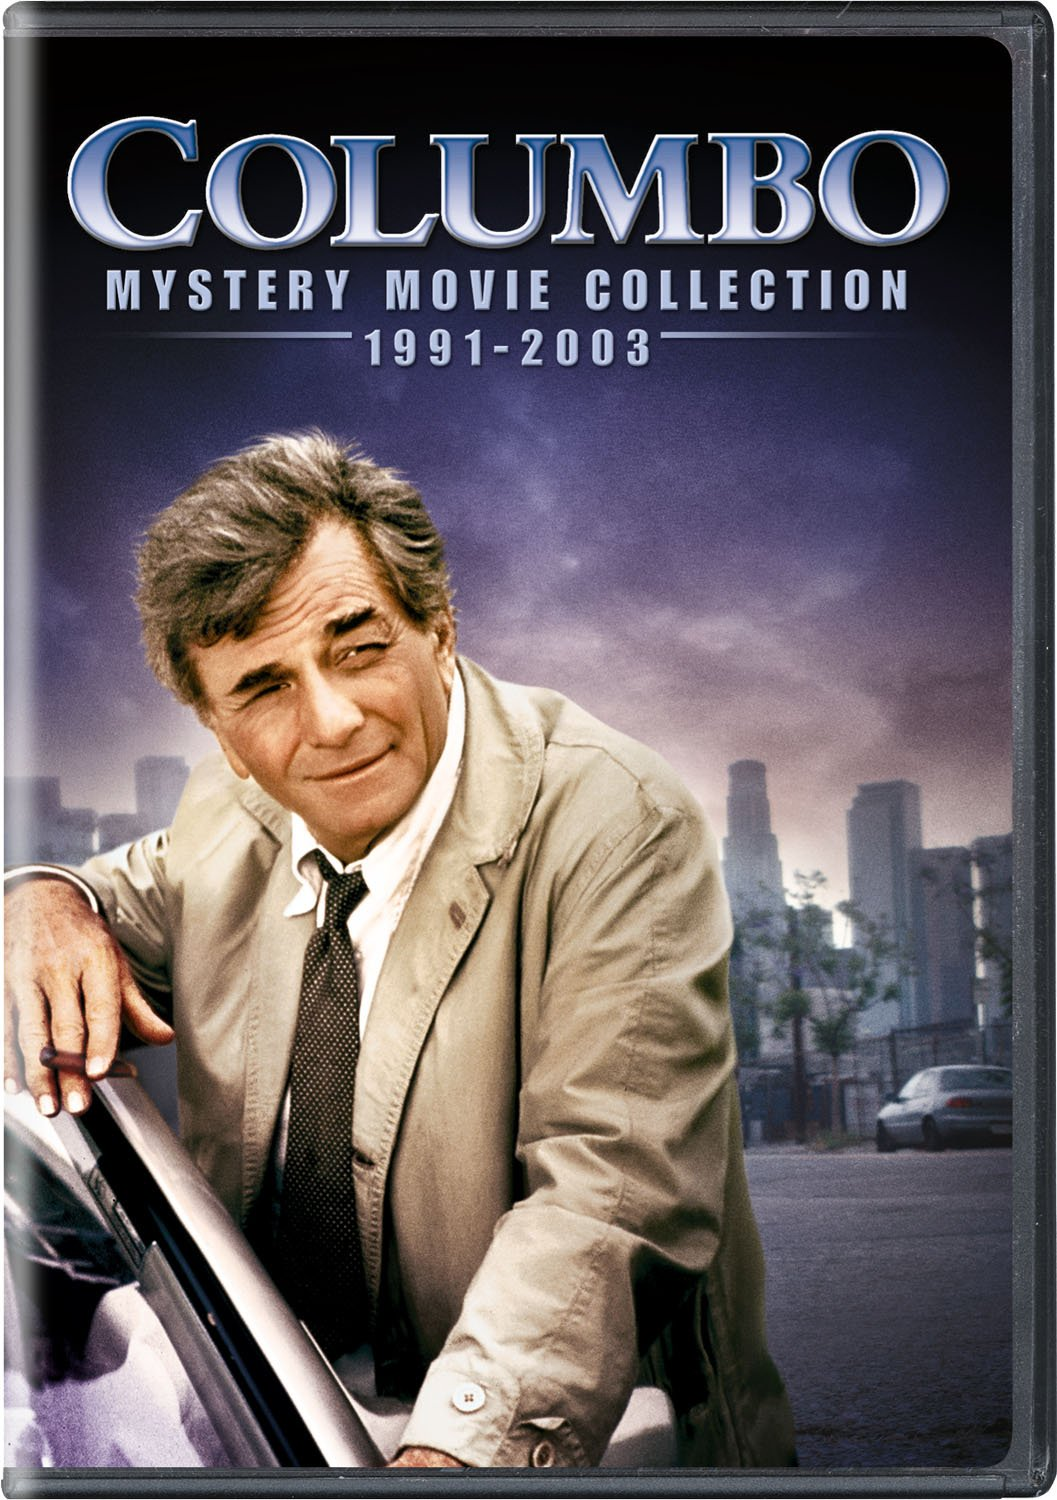 DVD : Columbo: Mystery Movie Collection 1991-2003 (Boxed Set, 6PC)